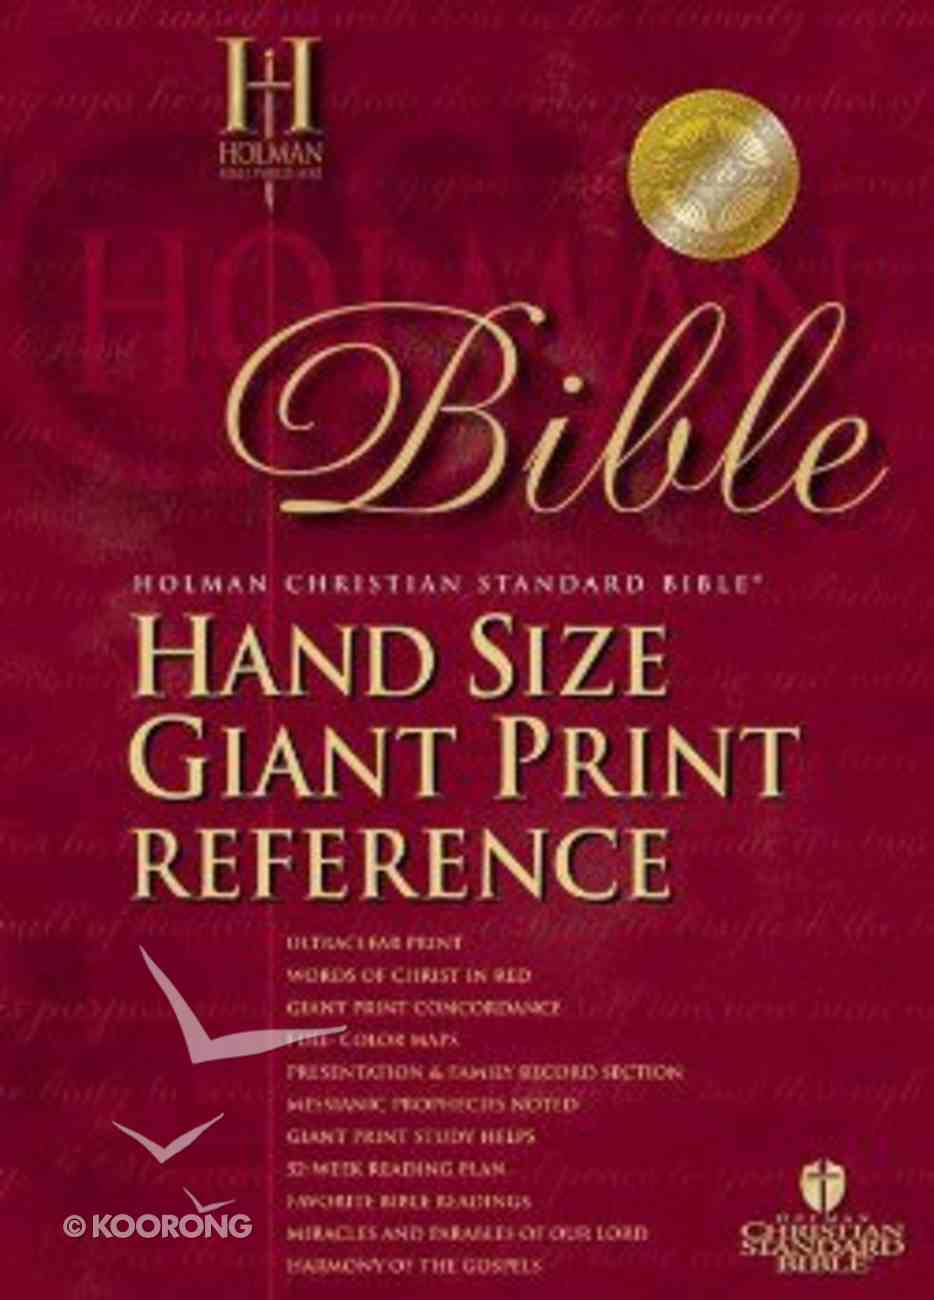 HCSB Hand Size Giant Print Reference Classic Edition Black Bonded Leather